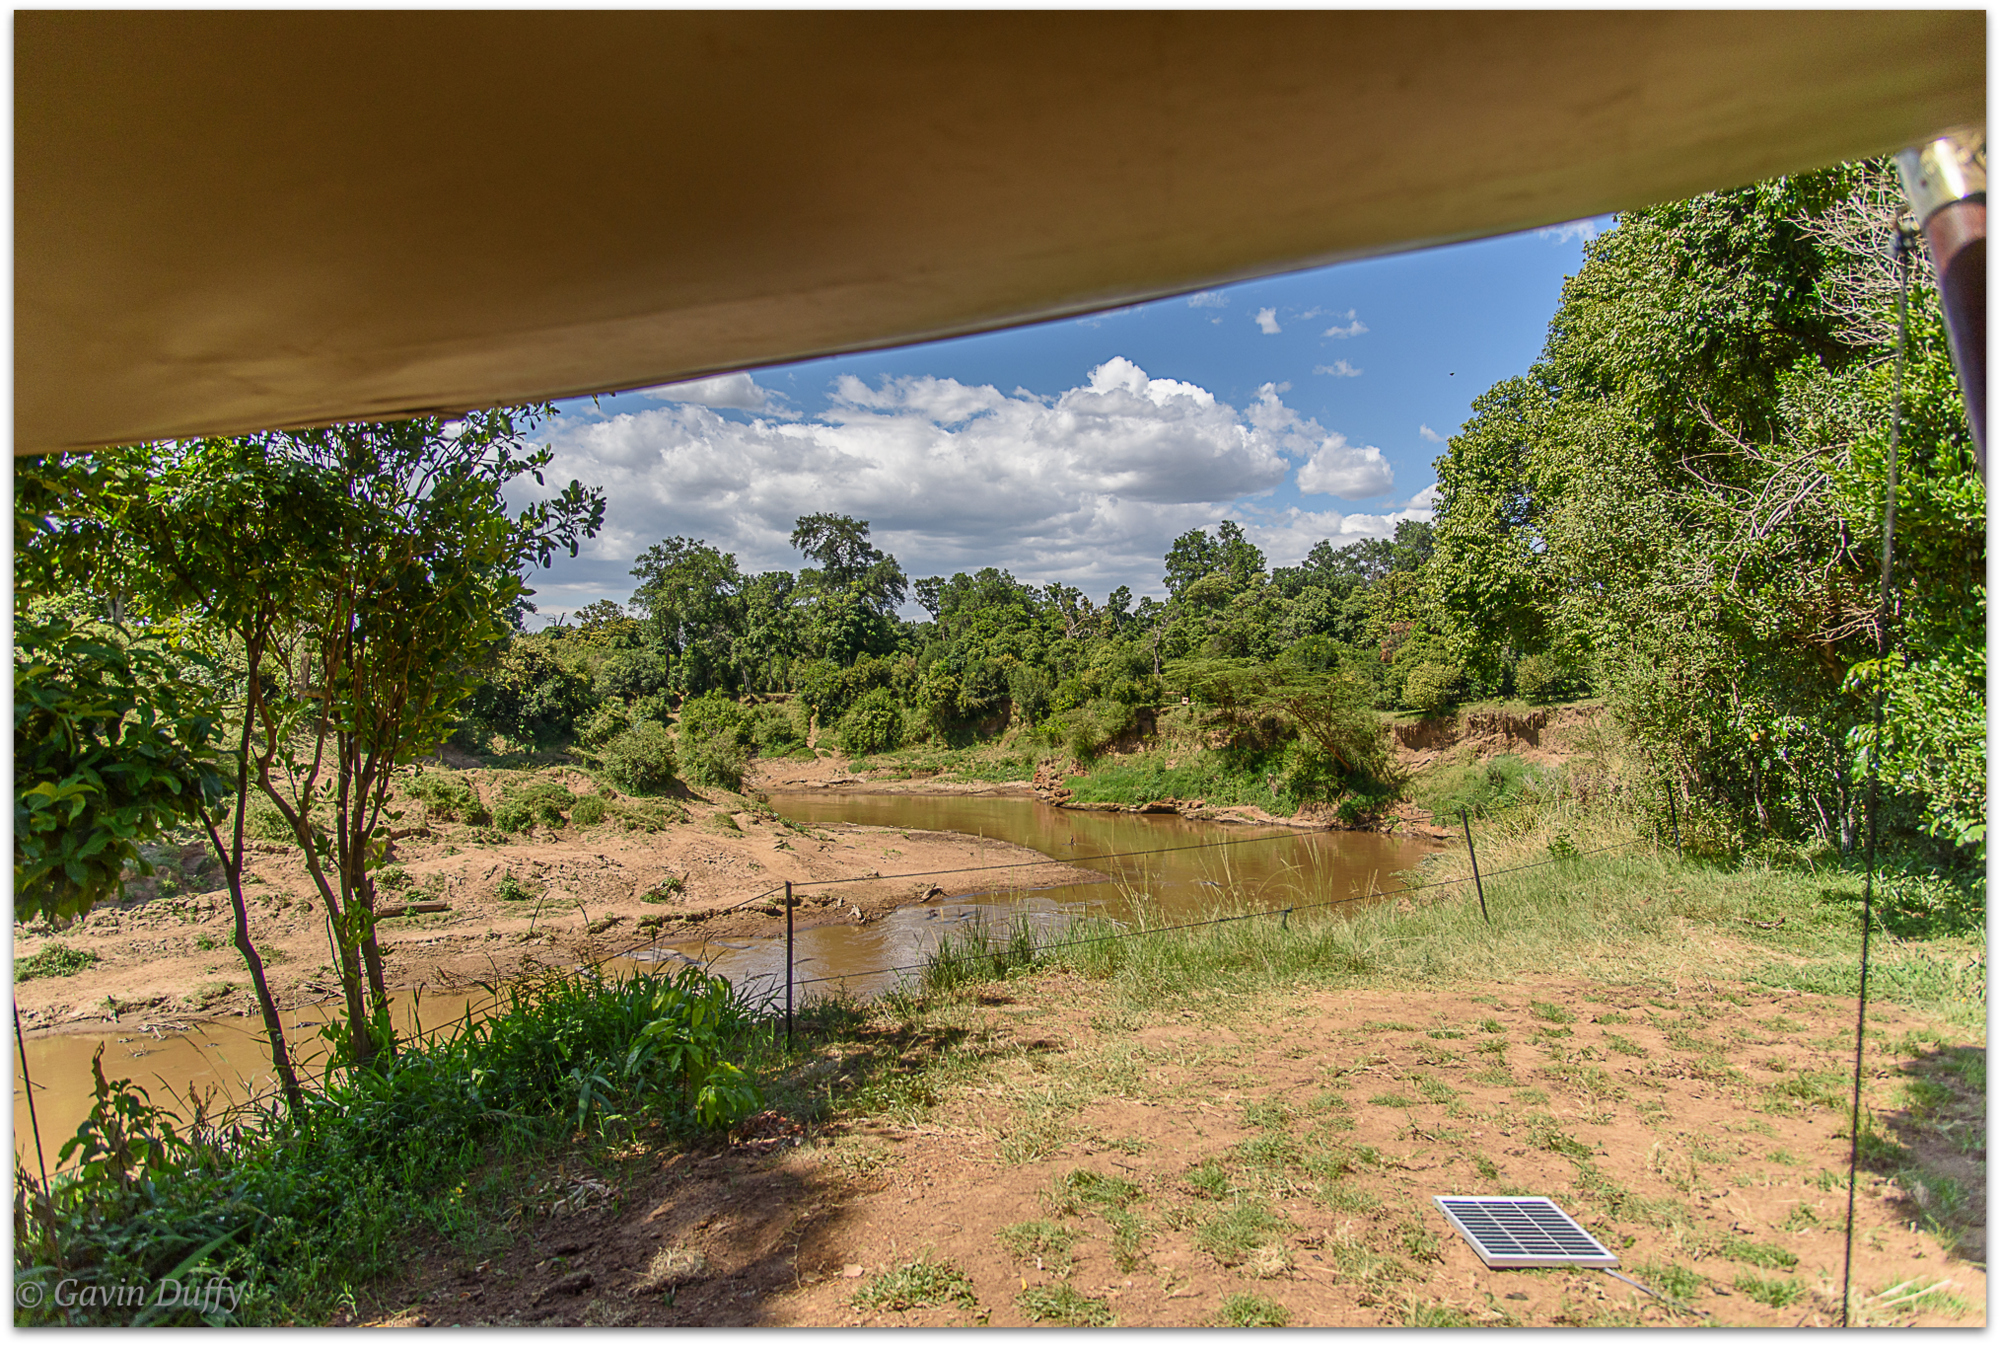 View of the Mara River from the tent © Gavin Duffy